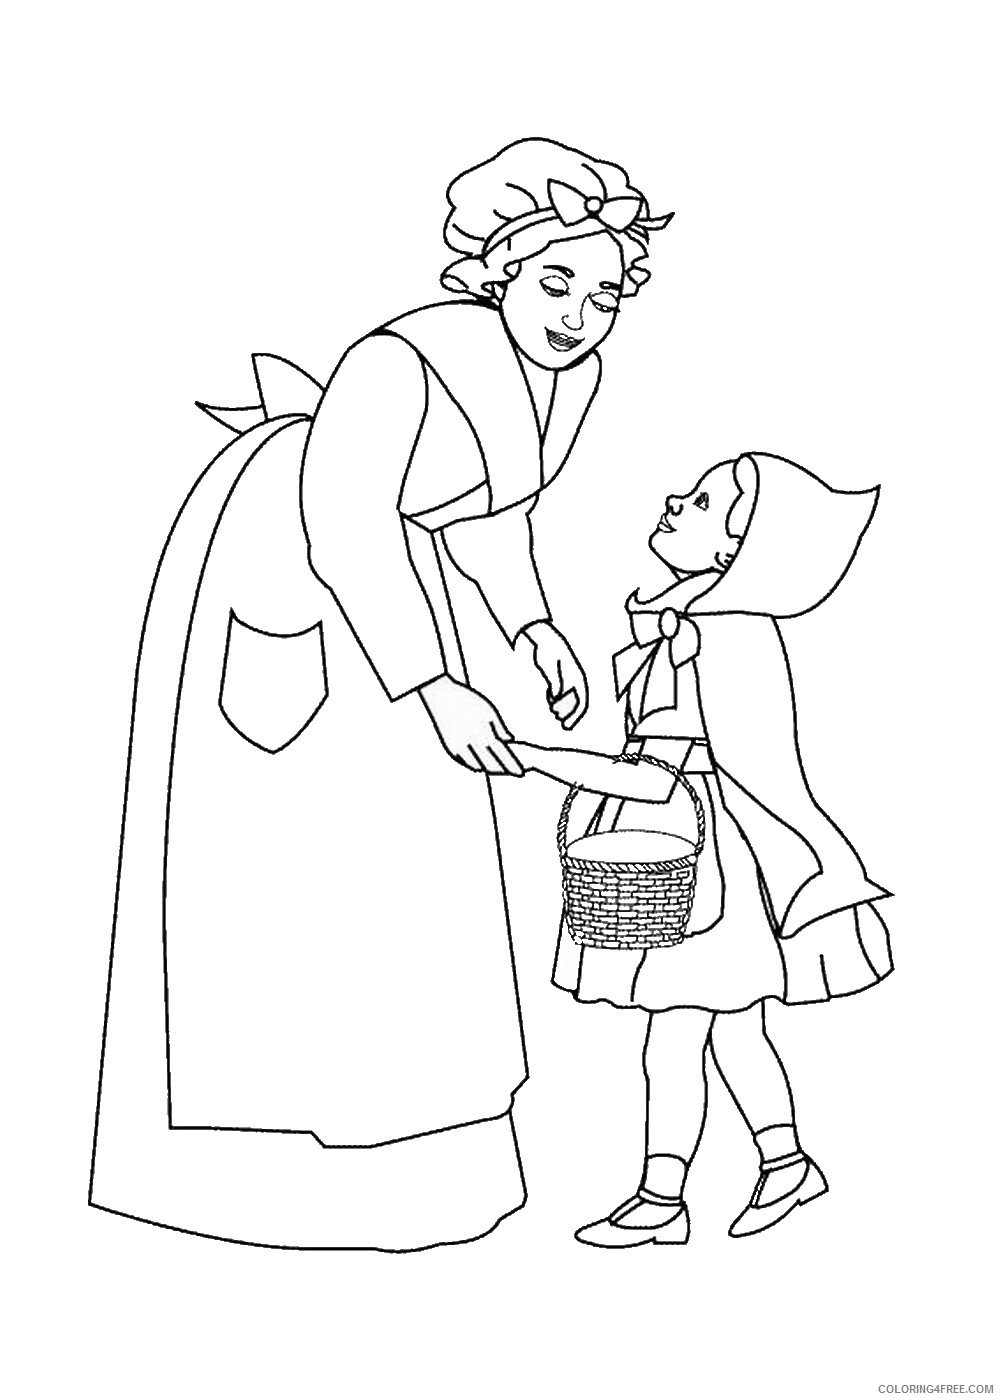 Little Red Riding Hood Coloring Pages Cartoons little_red_ridinghood_11 Printable 2020 3857 Coloring4free